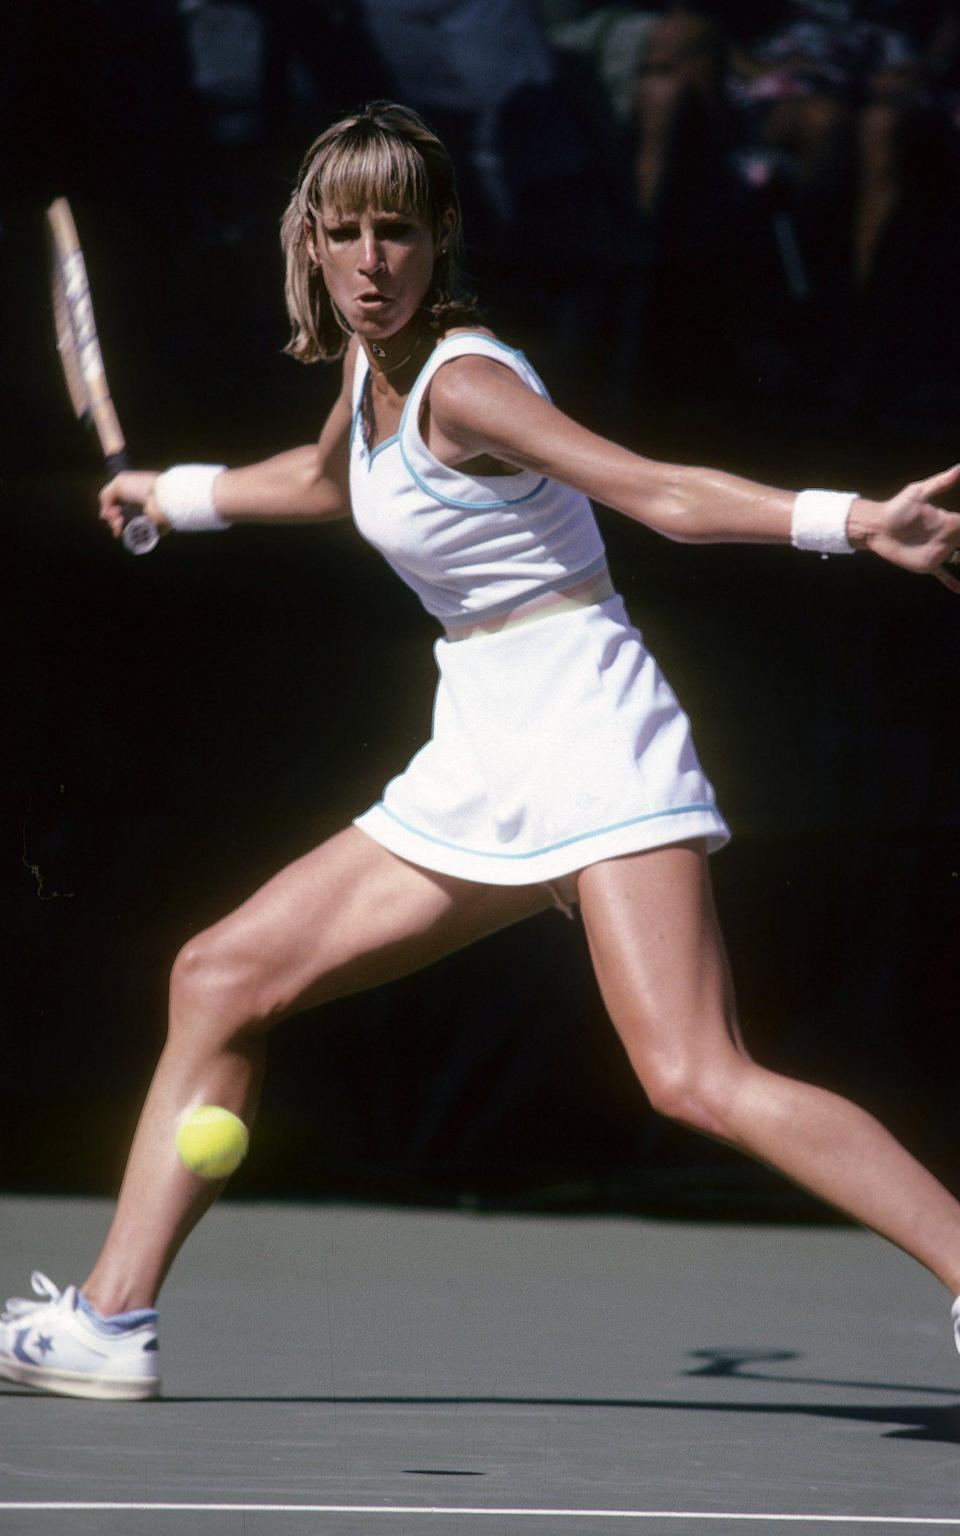 Tennis player Chris Evert Lloyd of the USA during the women finals of the 1980 U.S. Open tennis tournament - Credit: Focus On Sport/Getty Images